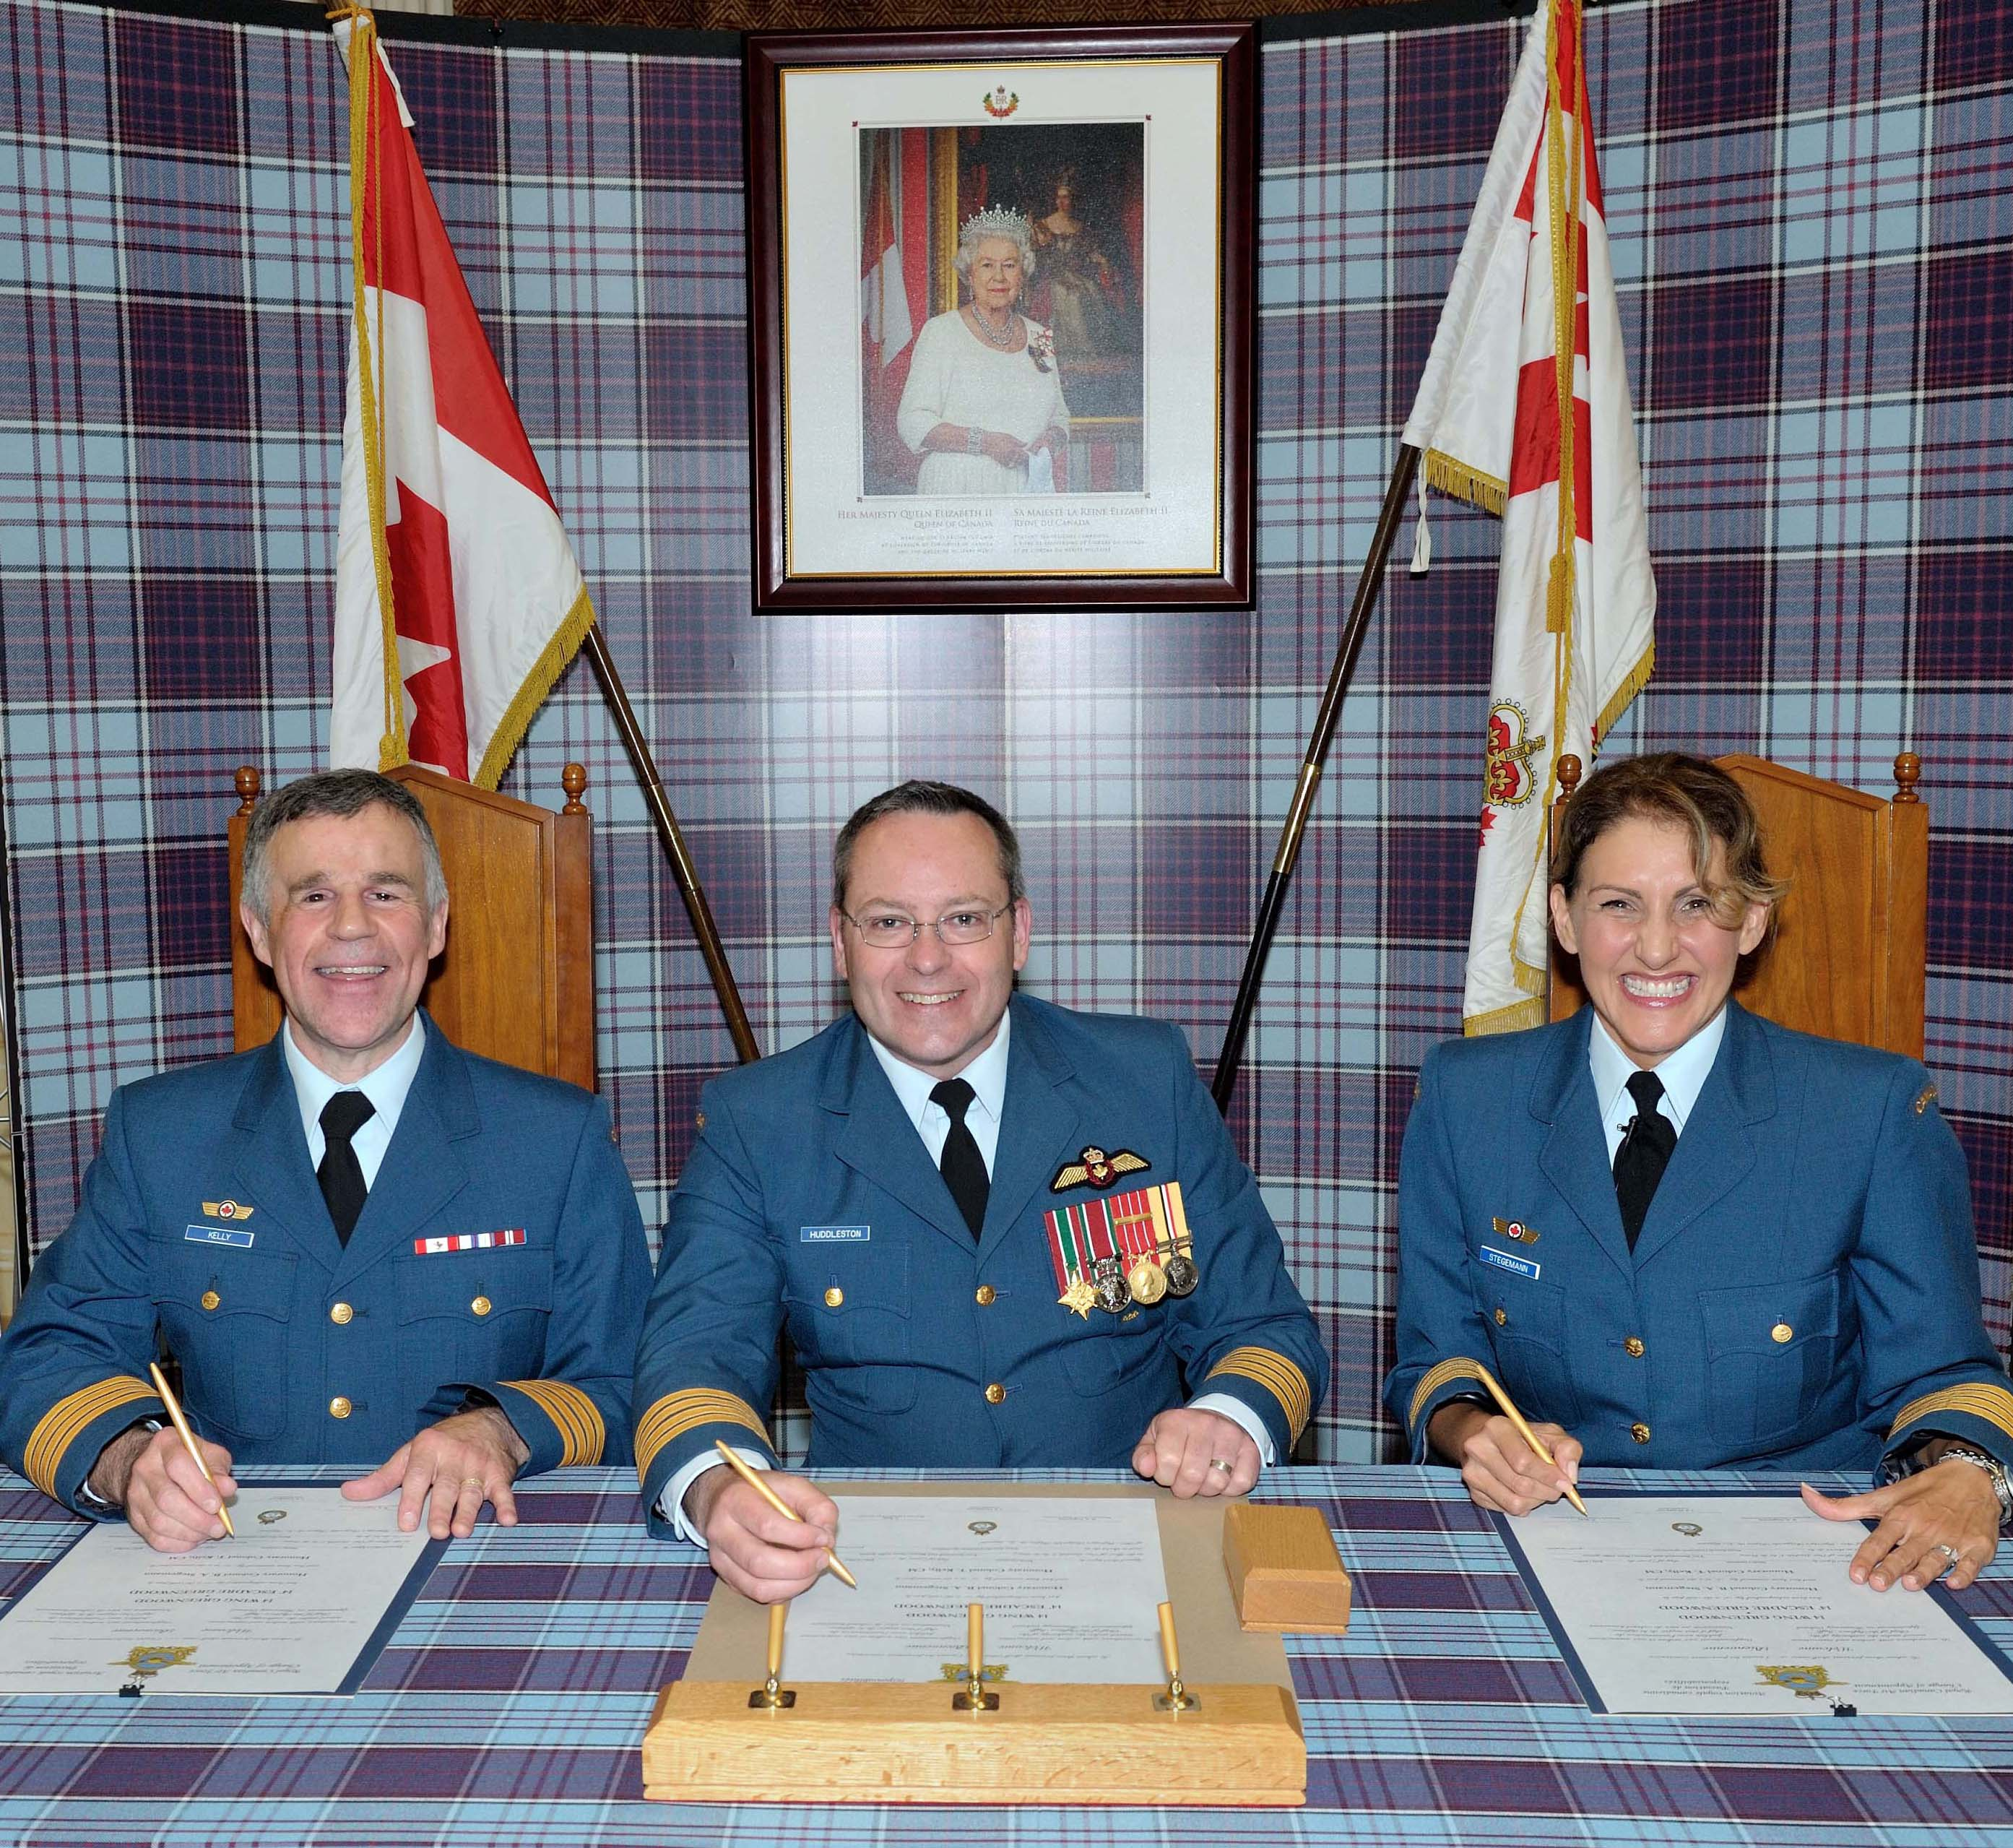 Honorary Colonel Terry Kelly (left), 14 Wing Greenwood's new honorary colonel, Colonel Iain Huddleston (centre), commander of 14 Wing, and Honorary Colonel Barb Stegemann, outgoing honorary colonel, sign the change of appointment documents on July 6, 2015